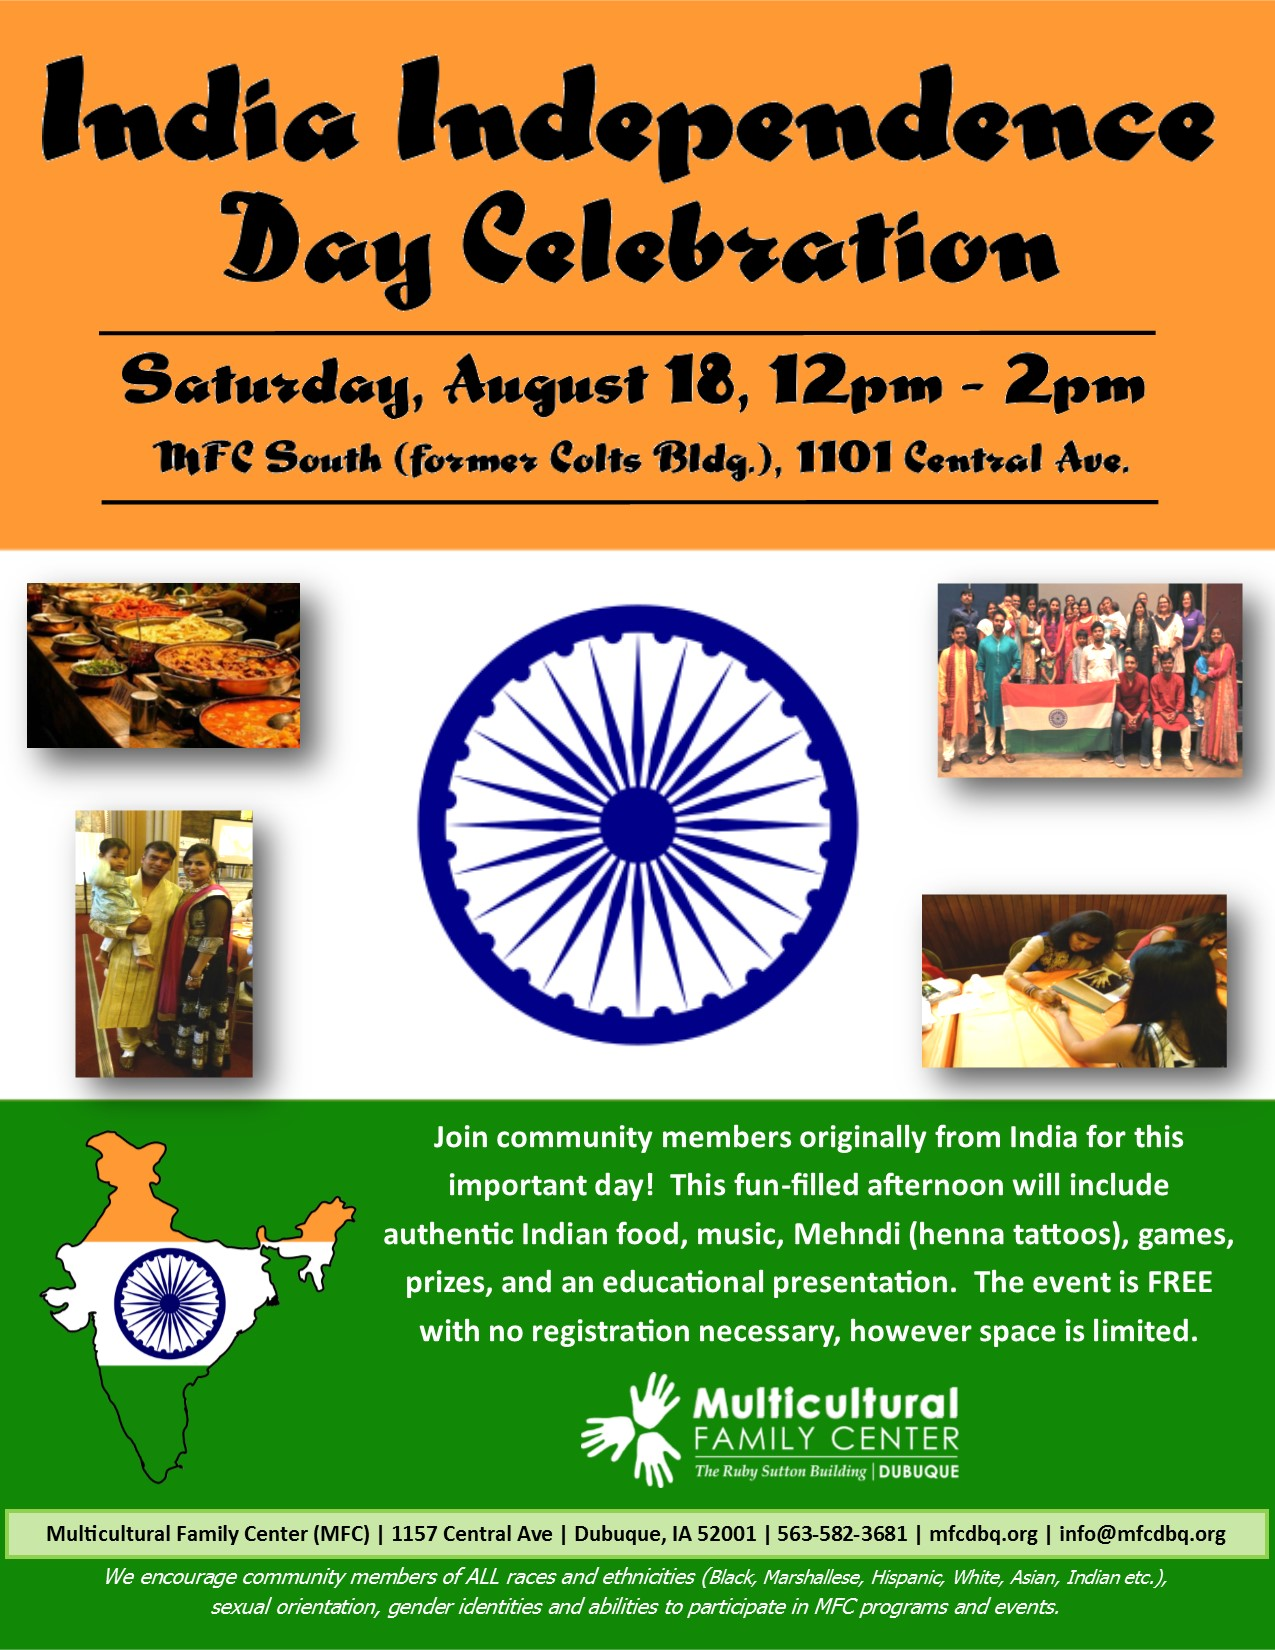 India Independence Day Celebration 2018 | Multicultural